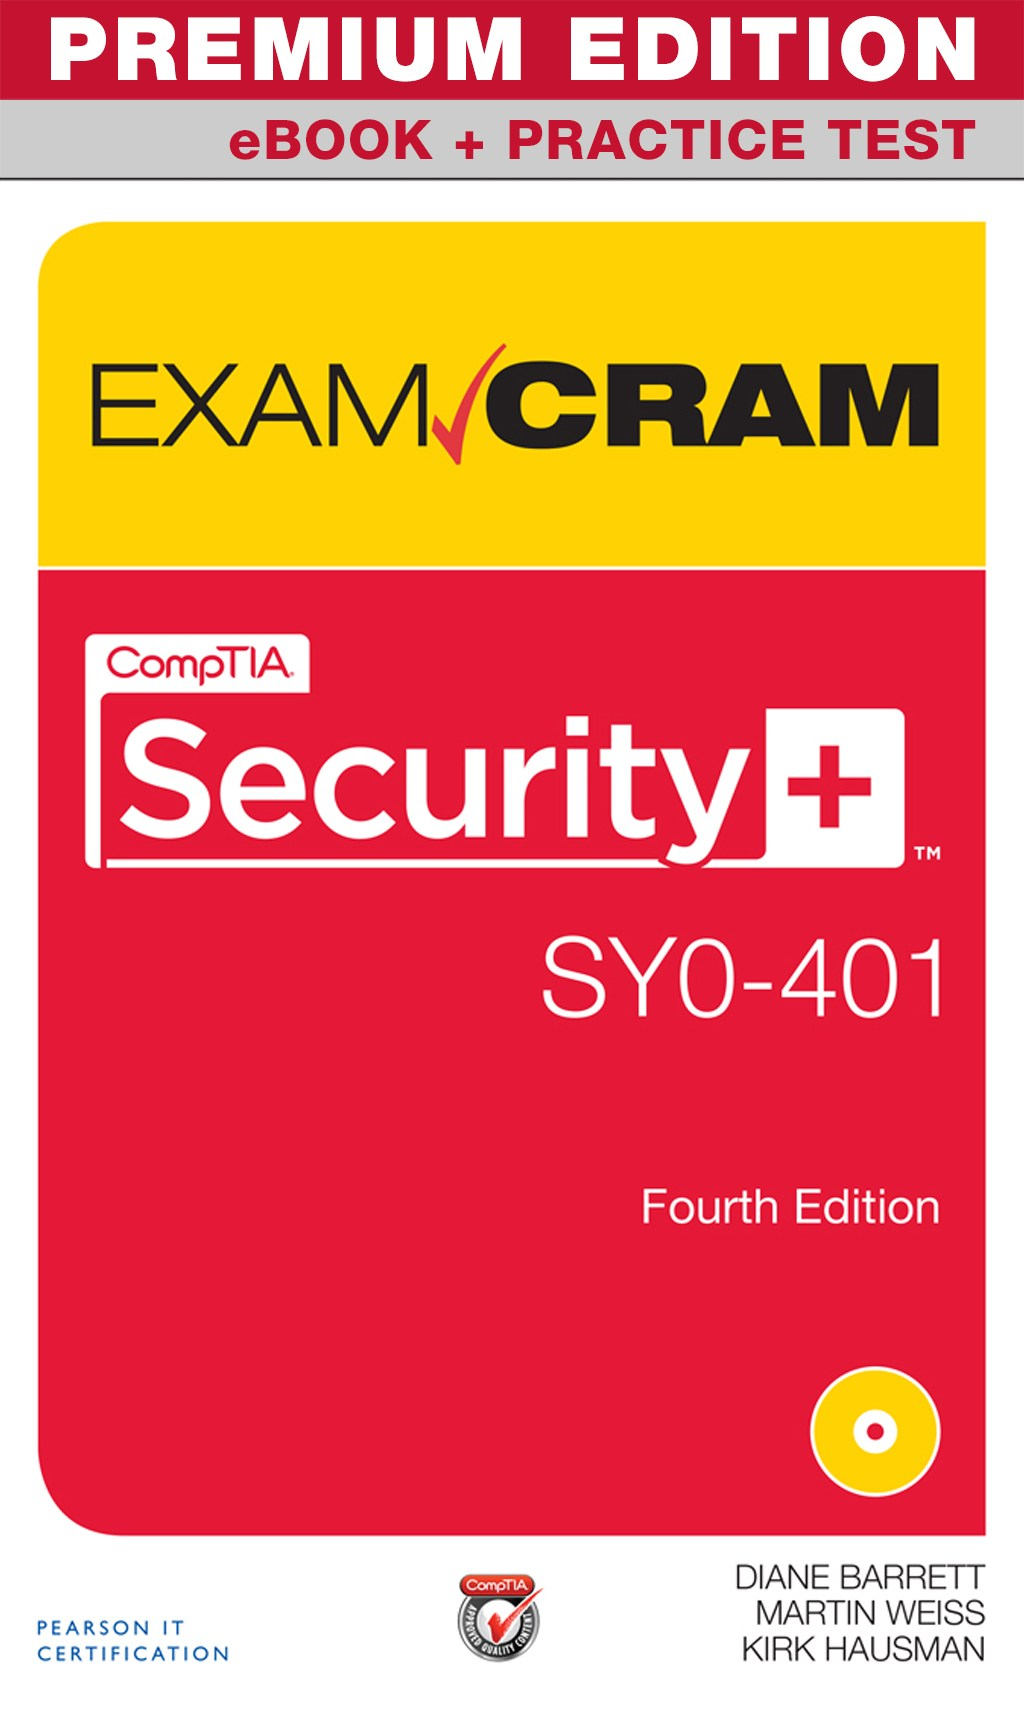 CompTIA Security+ SY0-401 Exam Cram Premium Edition and Practice Test